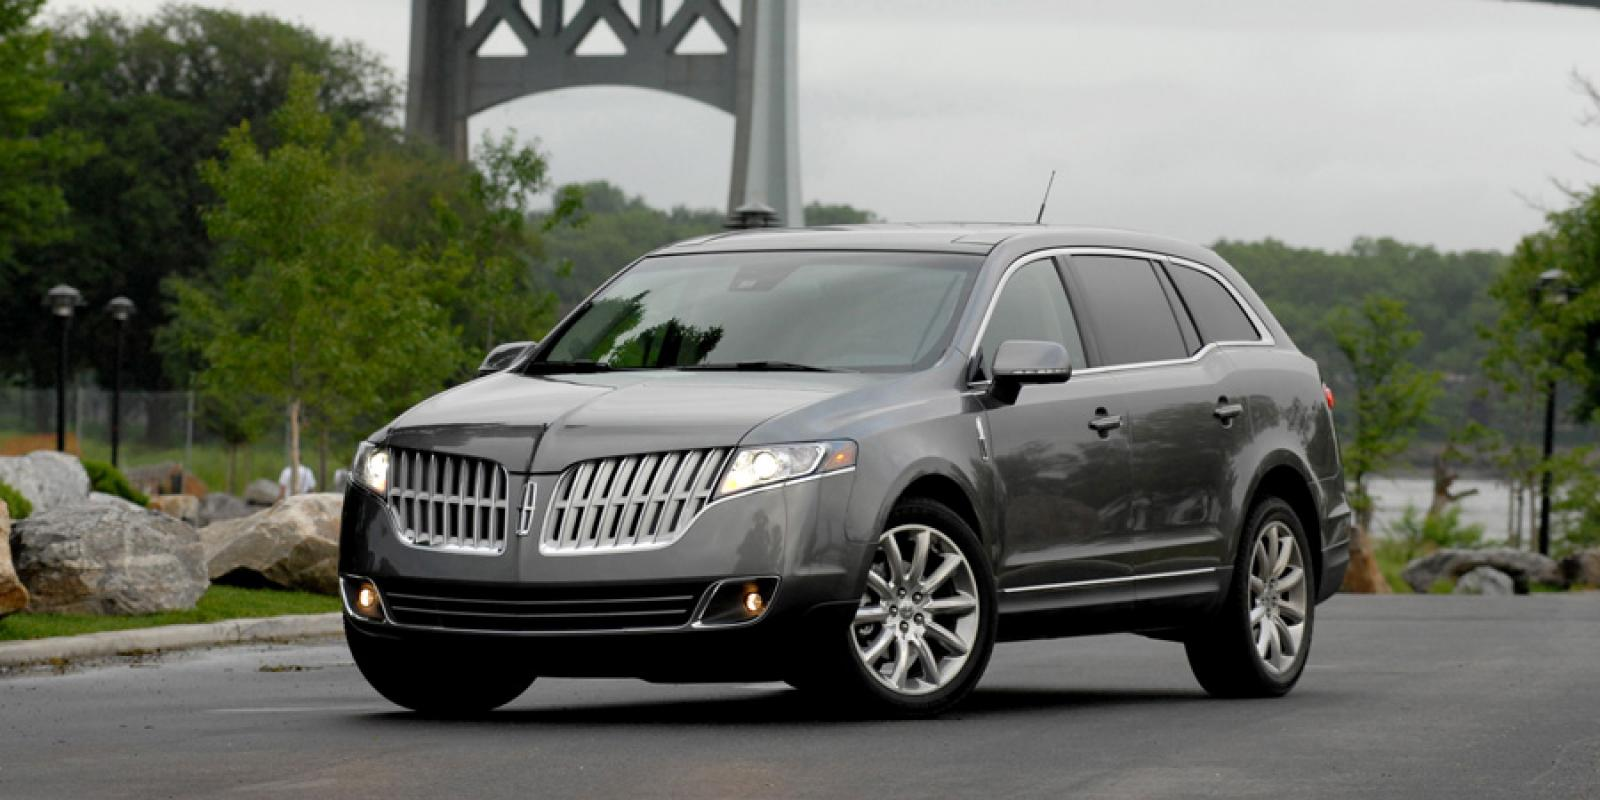 2014 lincoln mkt information and photos zombiedrive. Black Bedroom Furniture Sets. Home Design Ideas